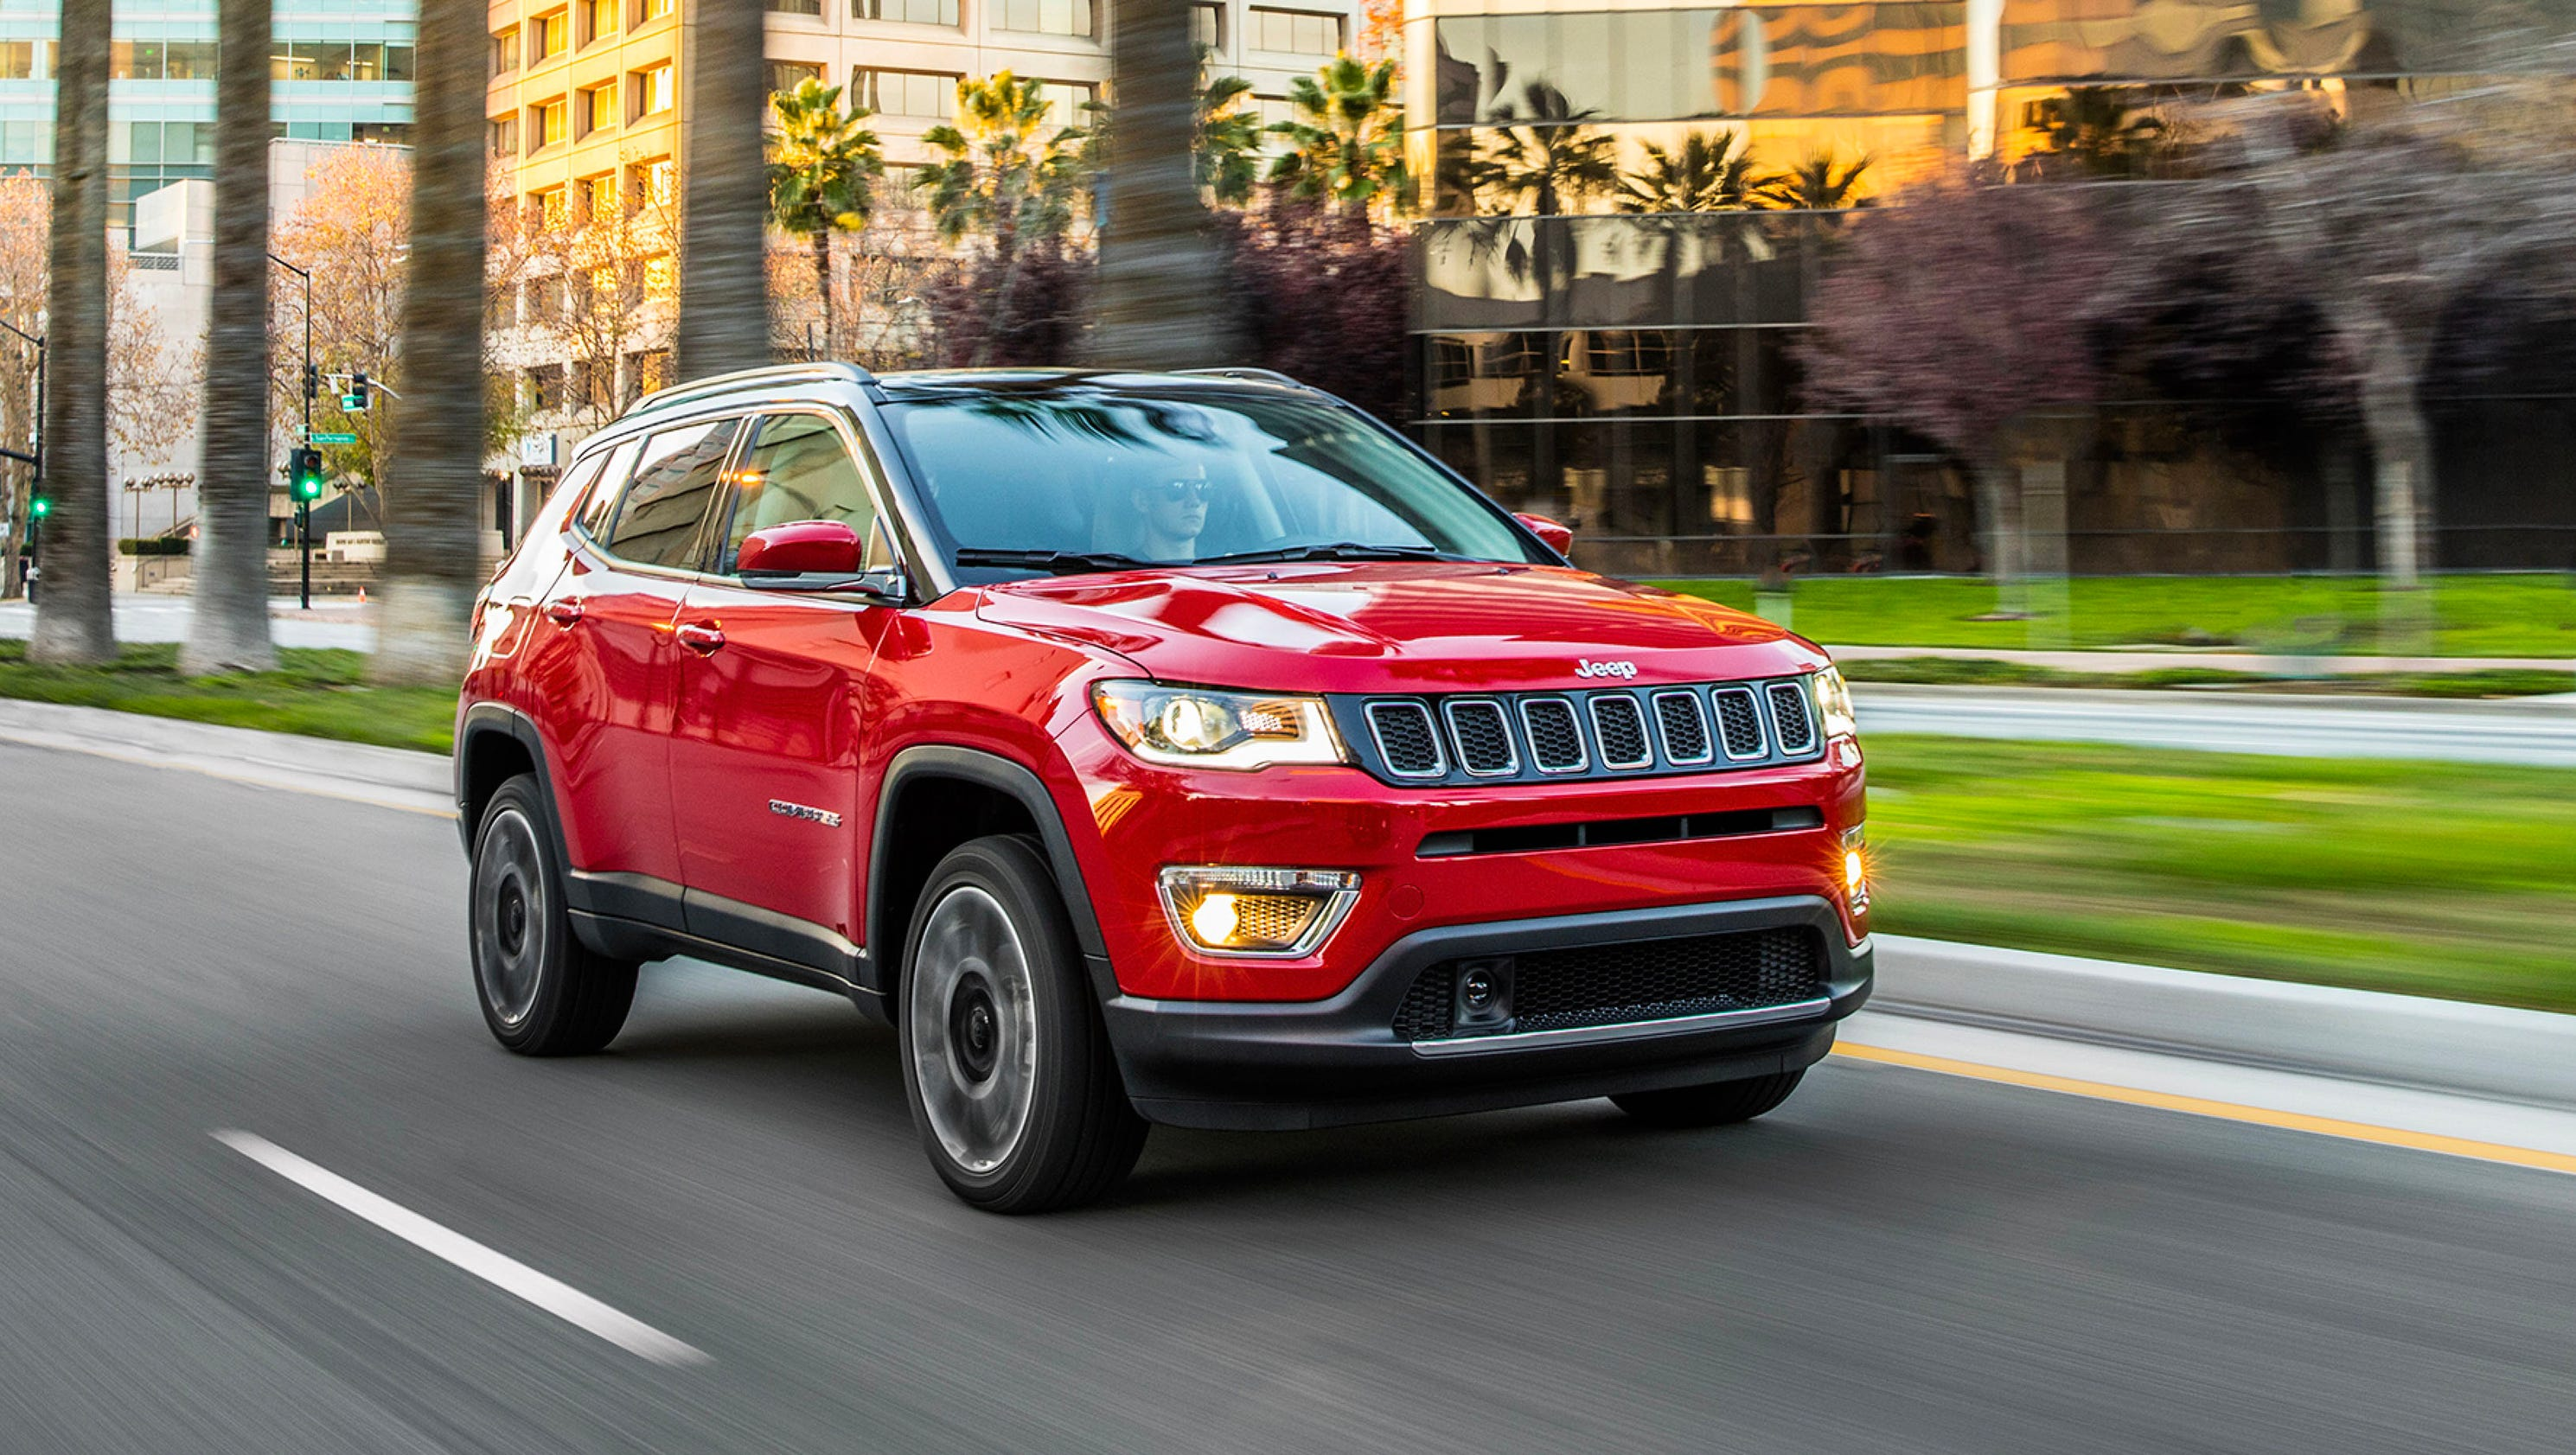 2017 Jeep Compass lives up to brand's heroic reputation